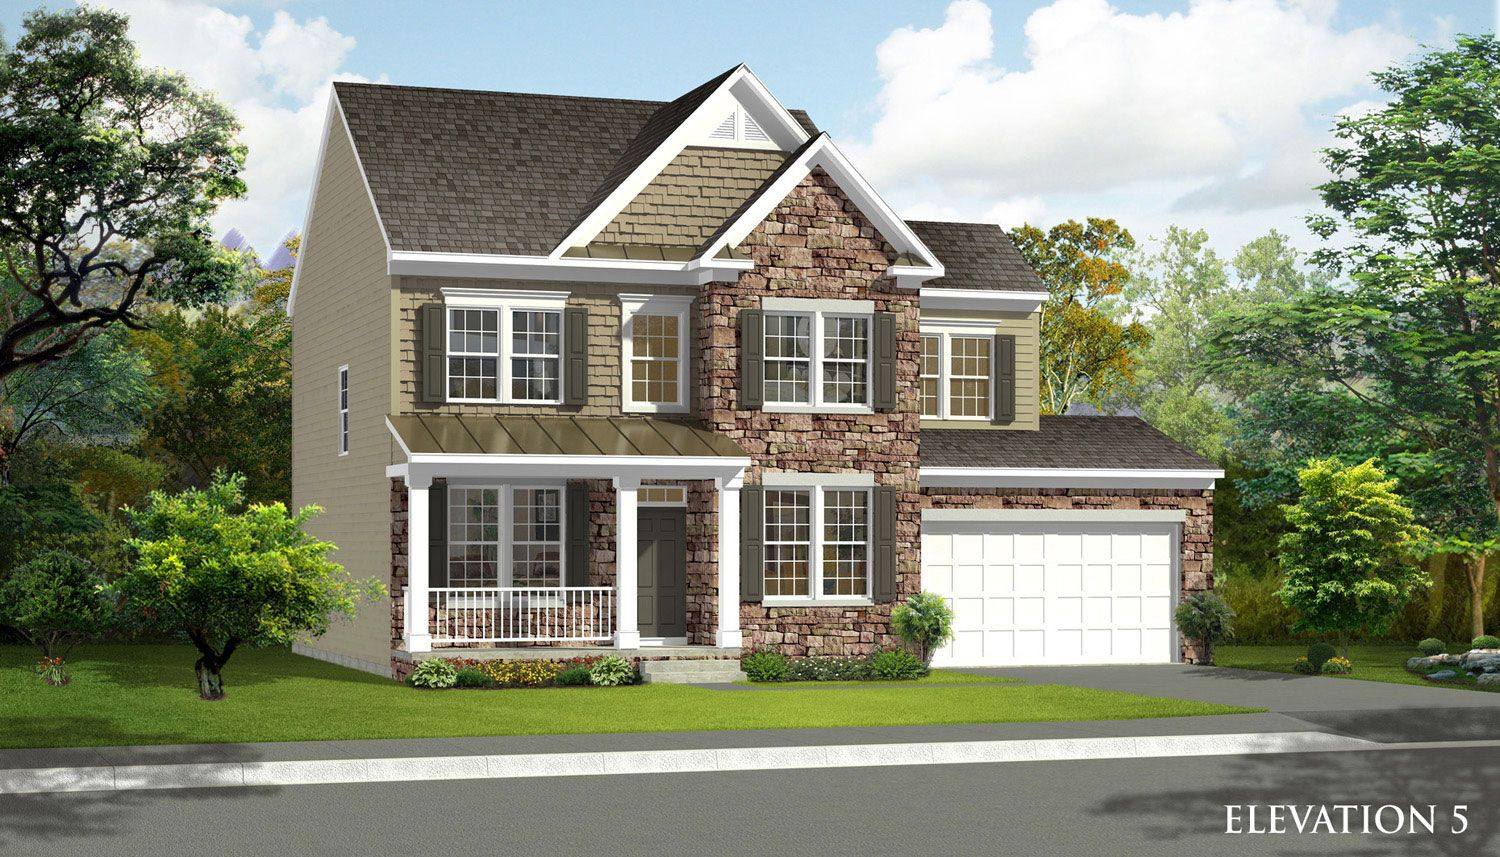 Real Estate at 6866 McCormick Drive, Bryans Road in Charles County, MD 20616